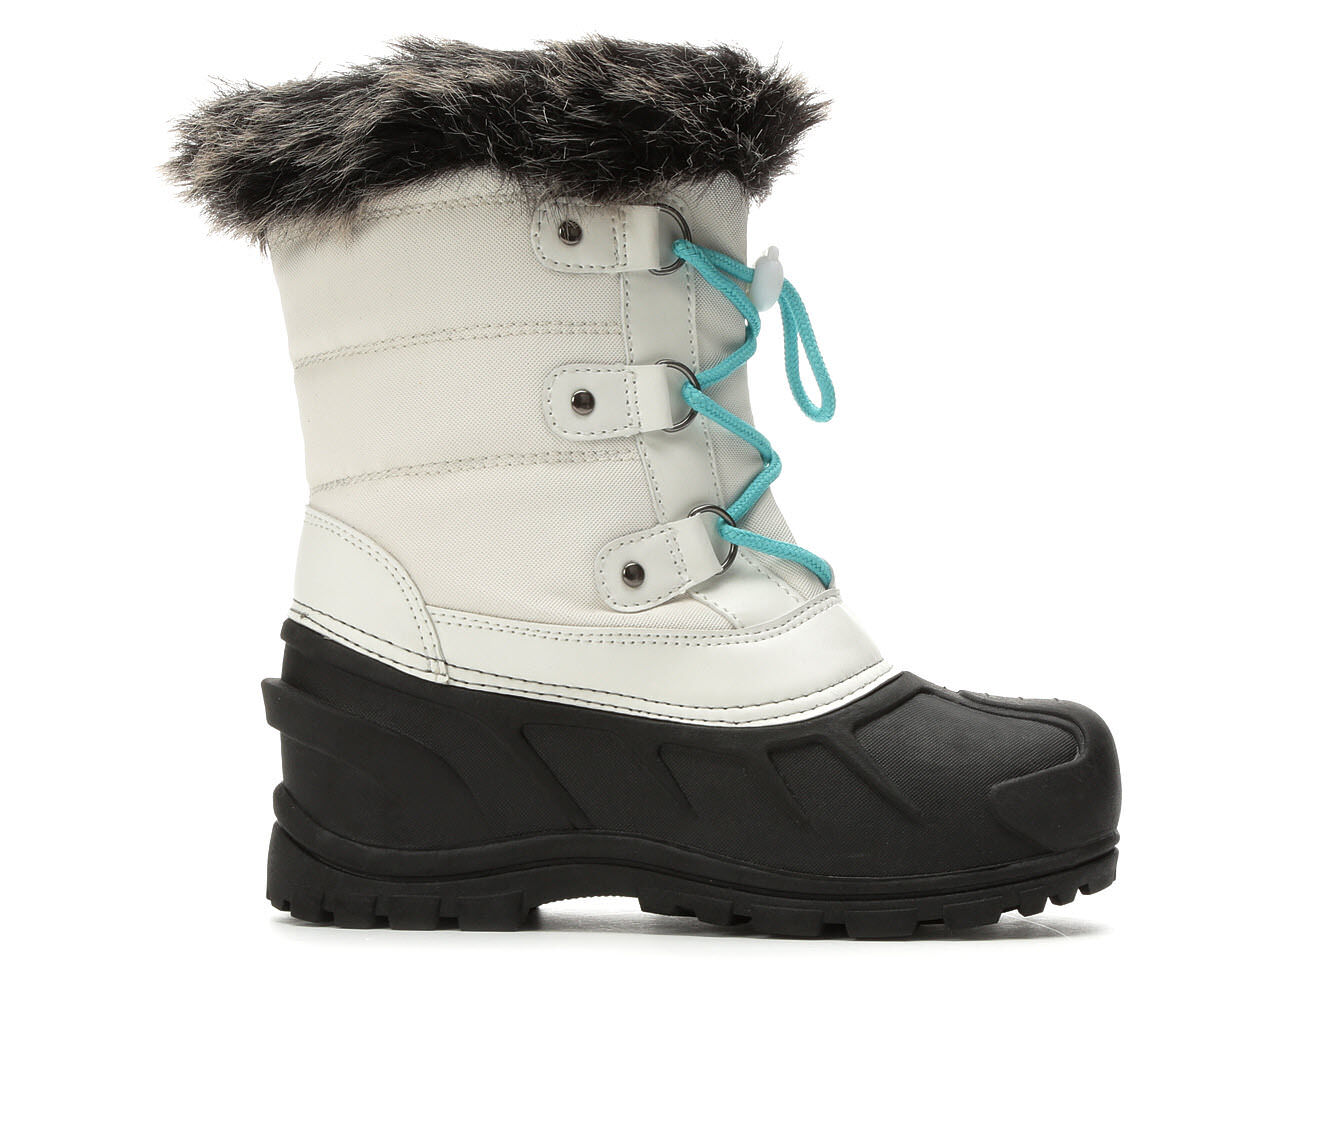 Shoe Store: Boots, Sneakers, & More Online